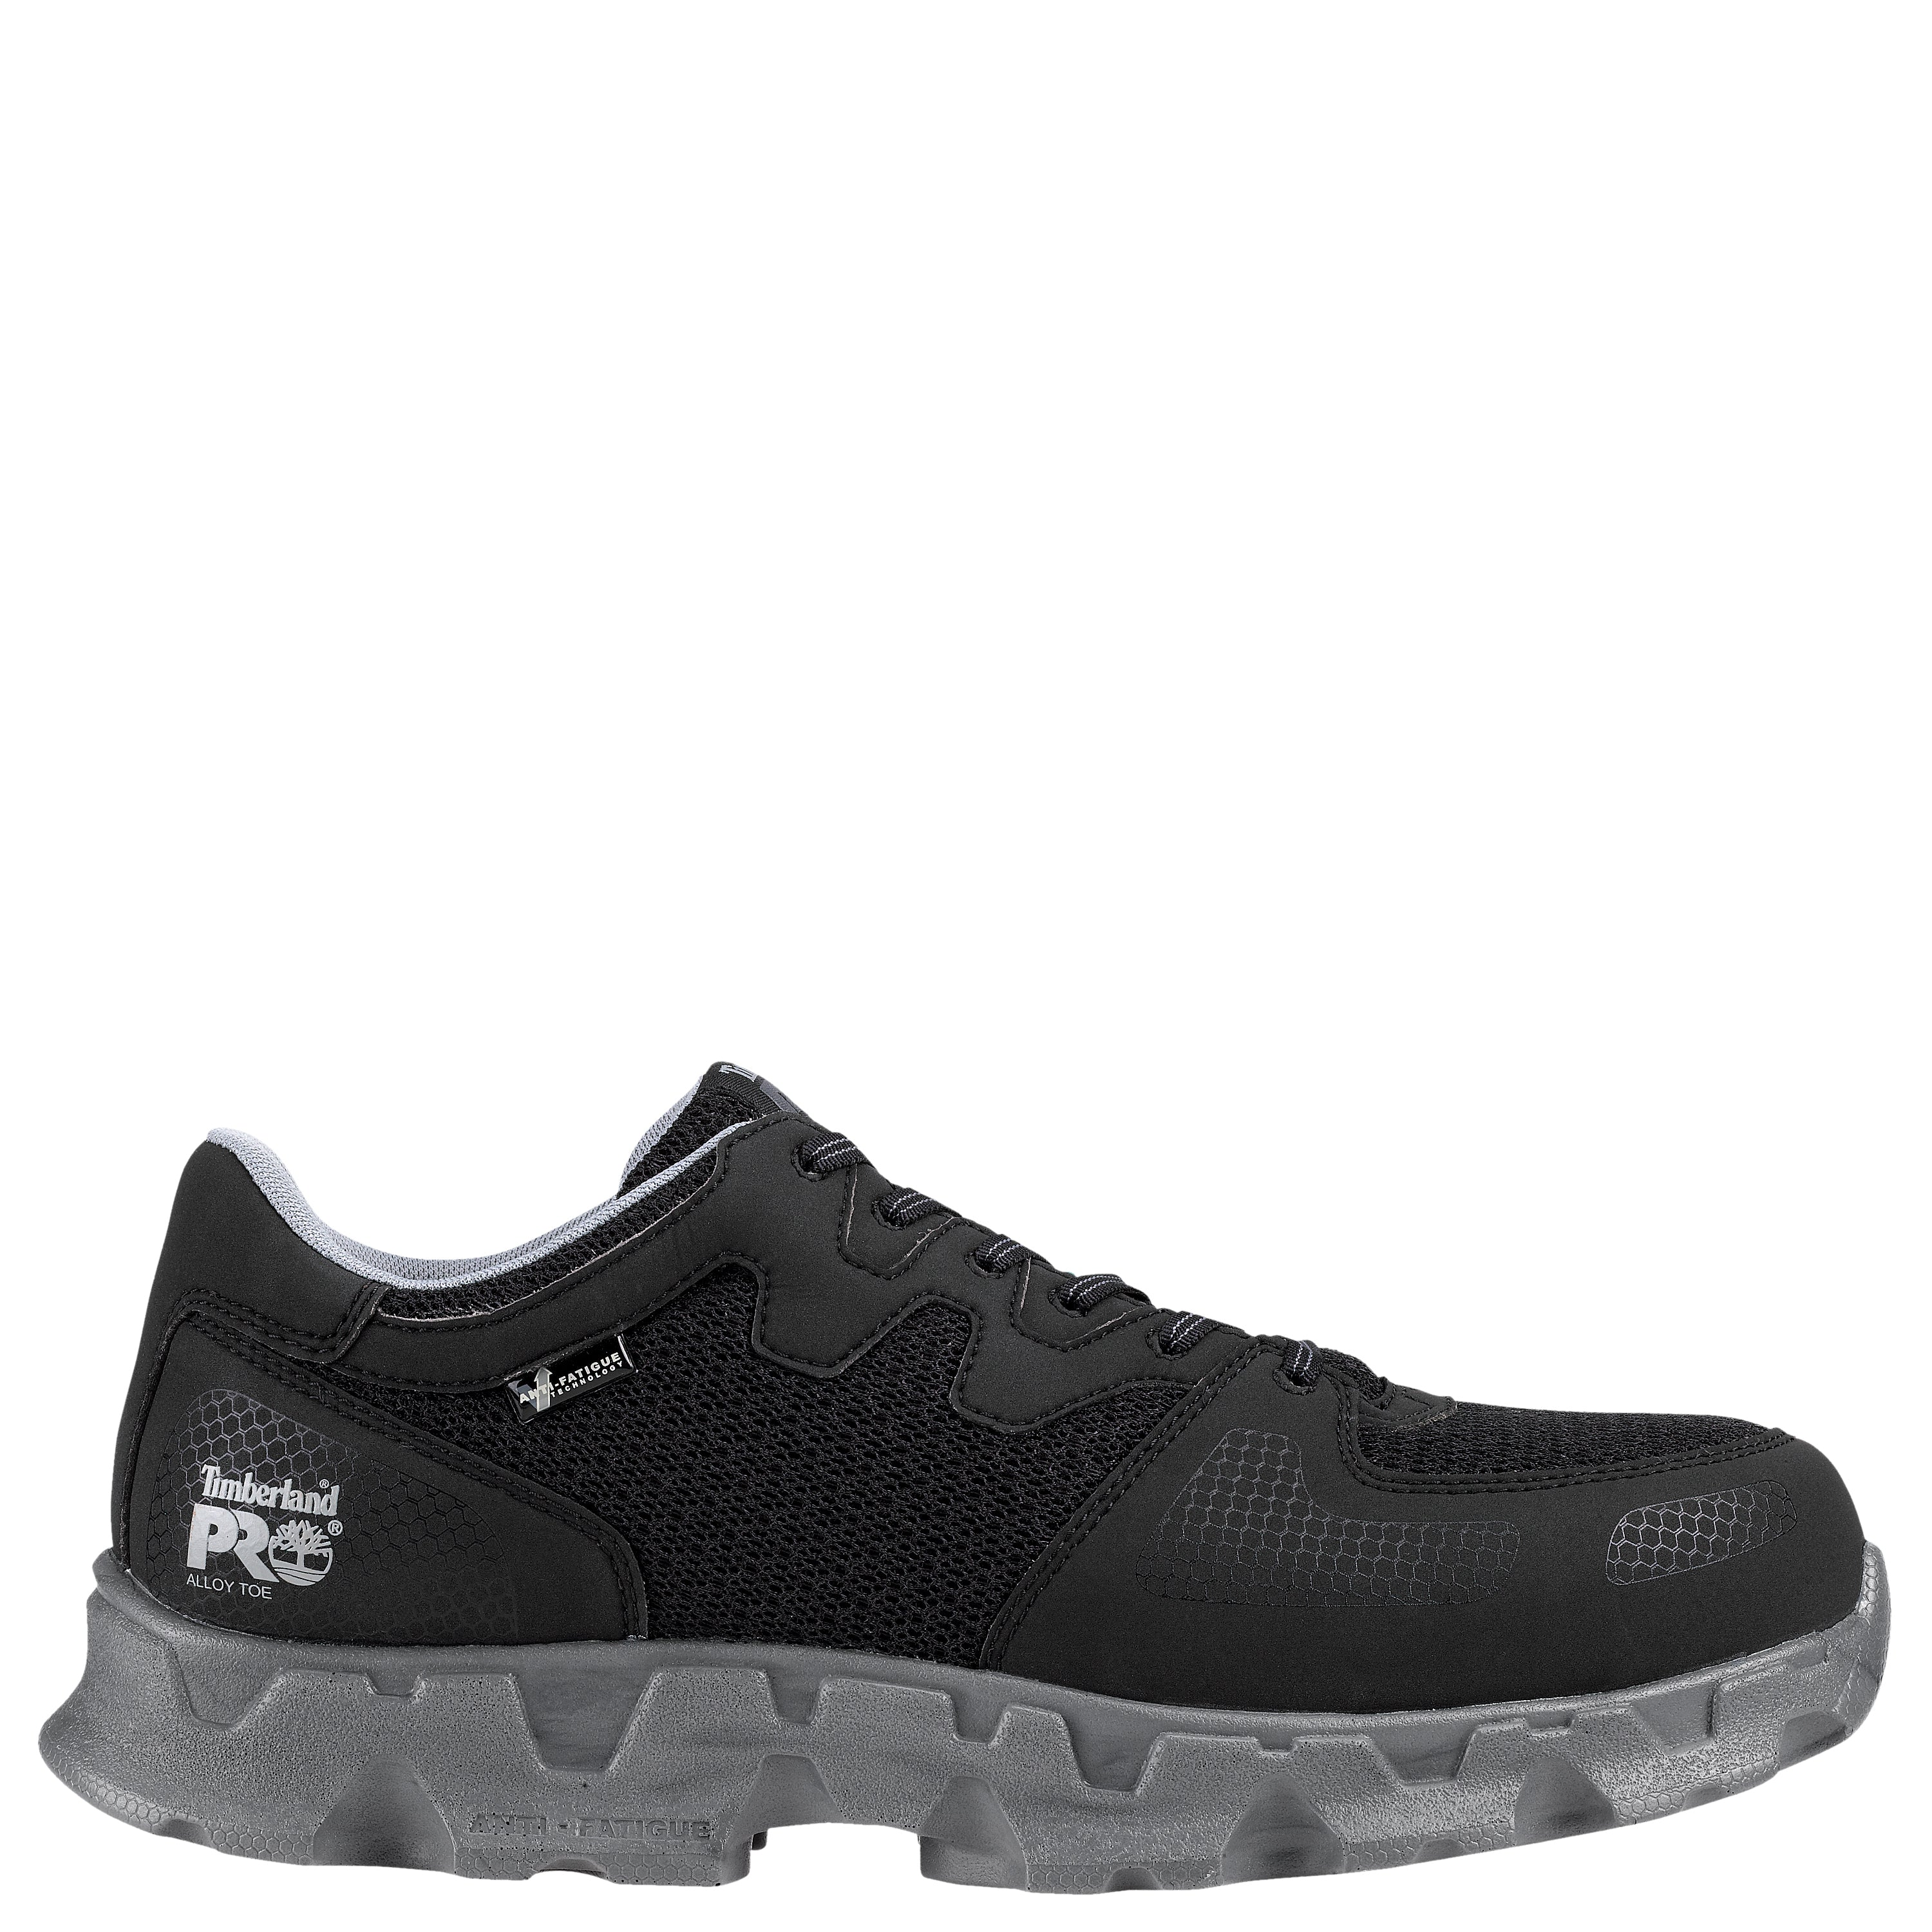 Powertrain ESD Alloy Toe - Black / Grey